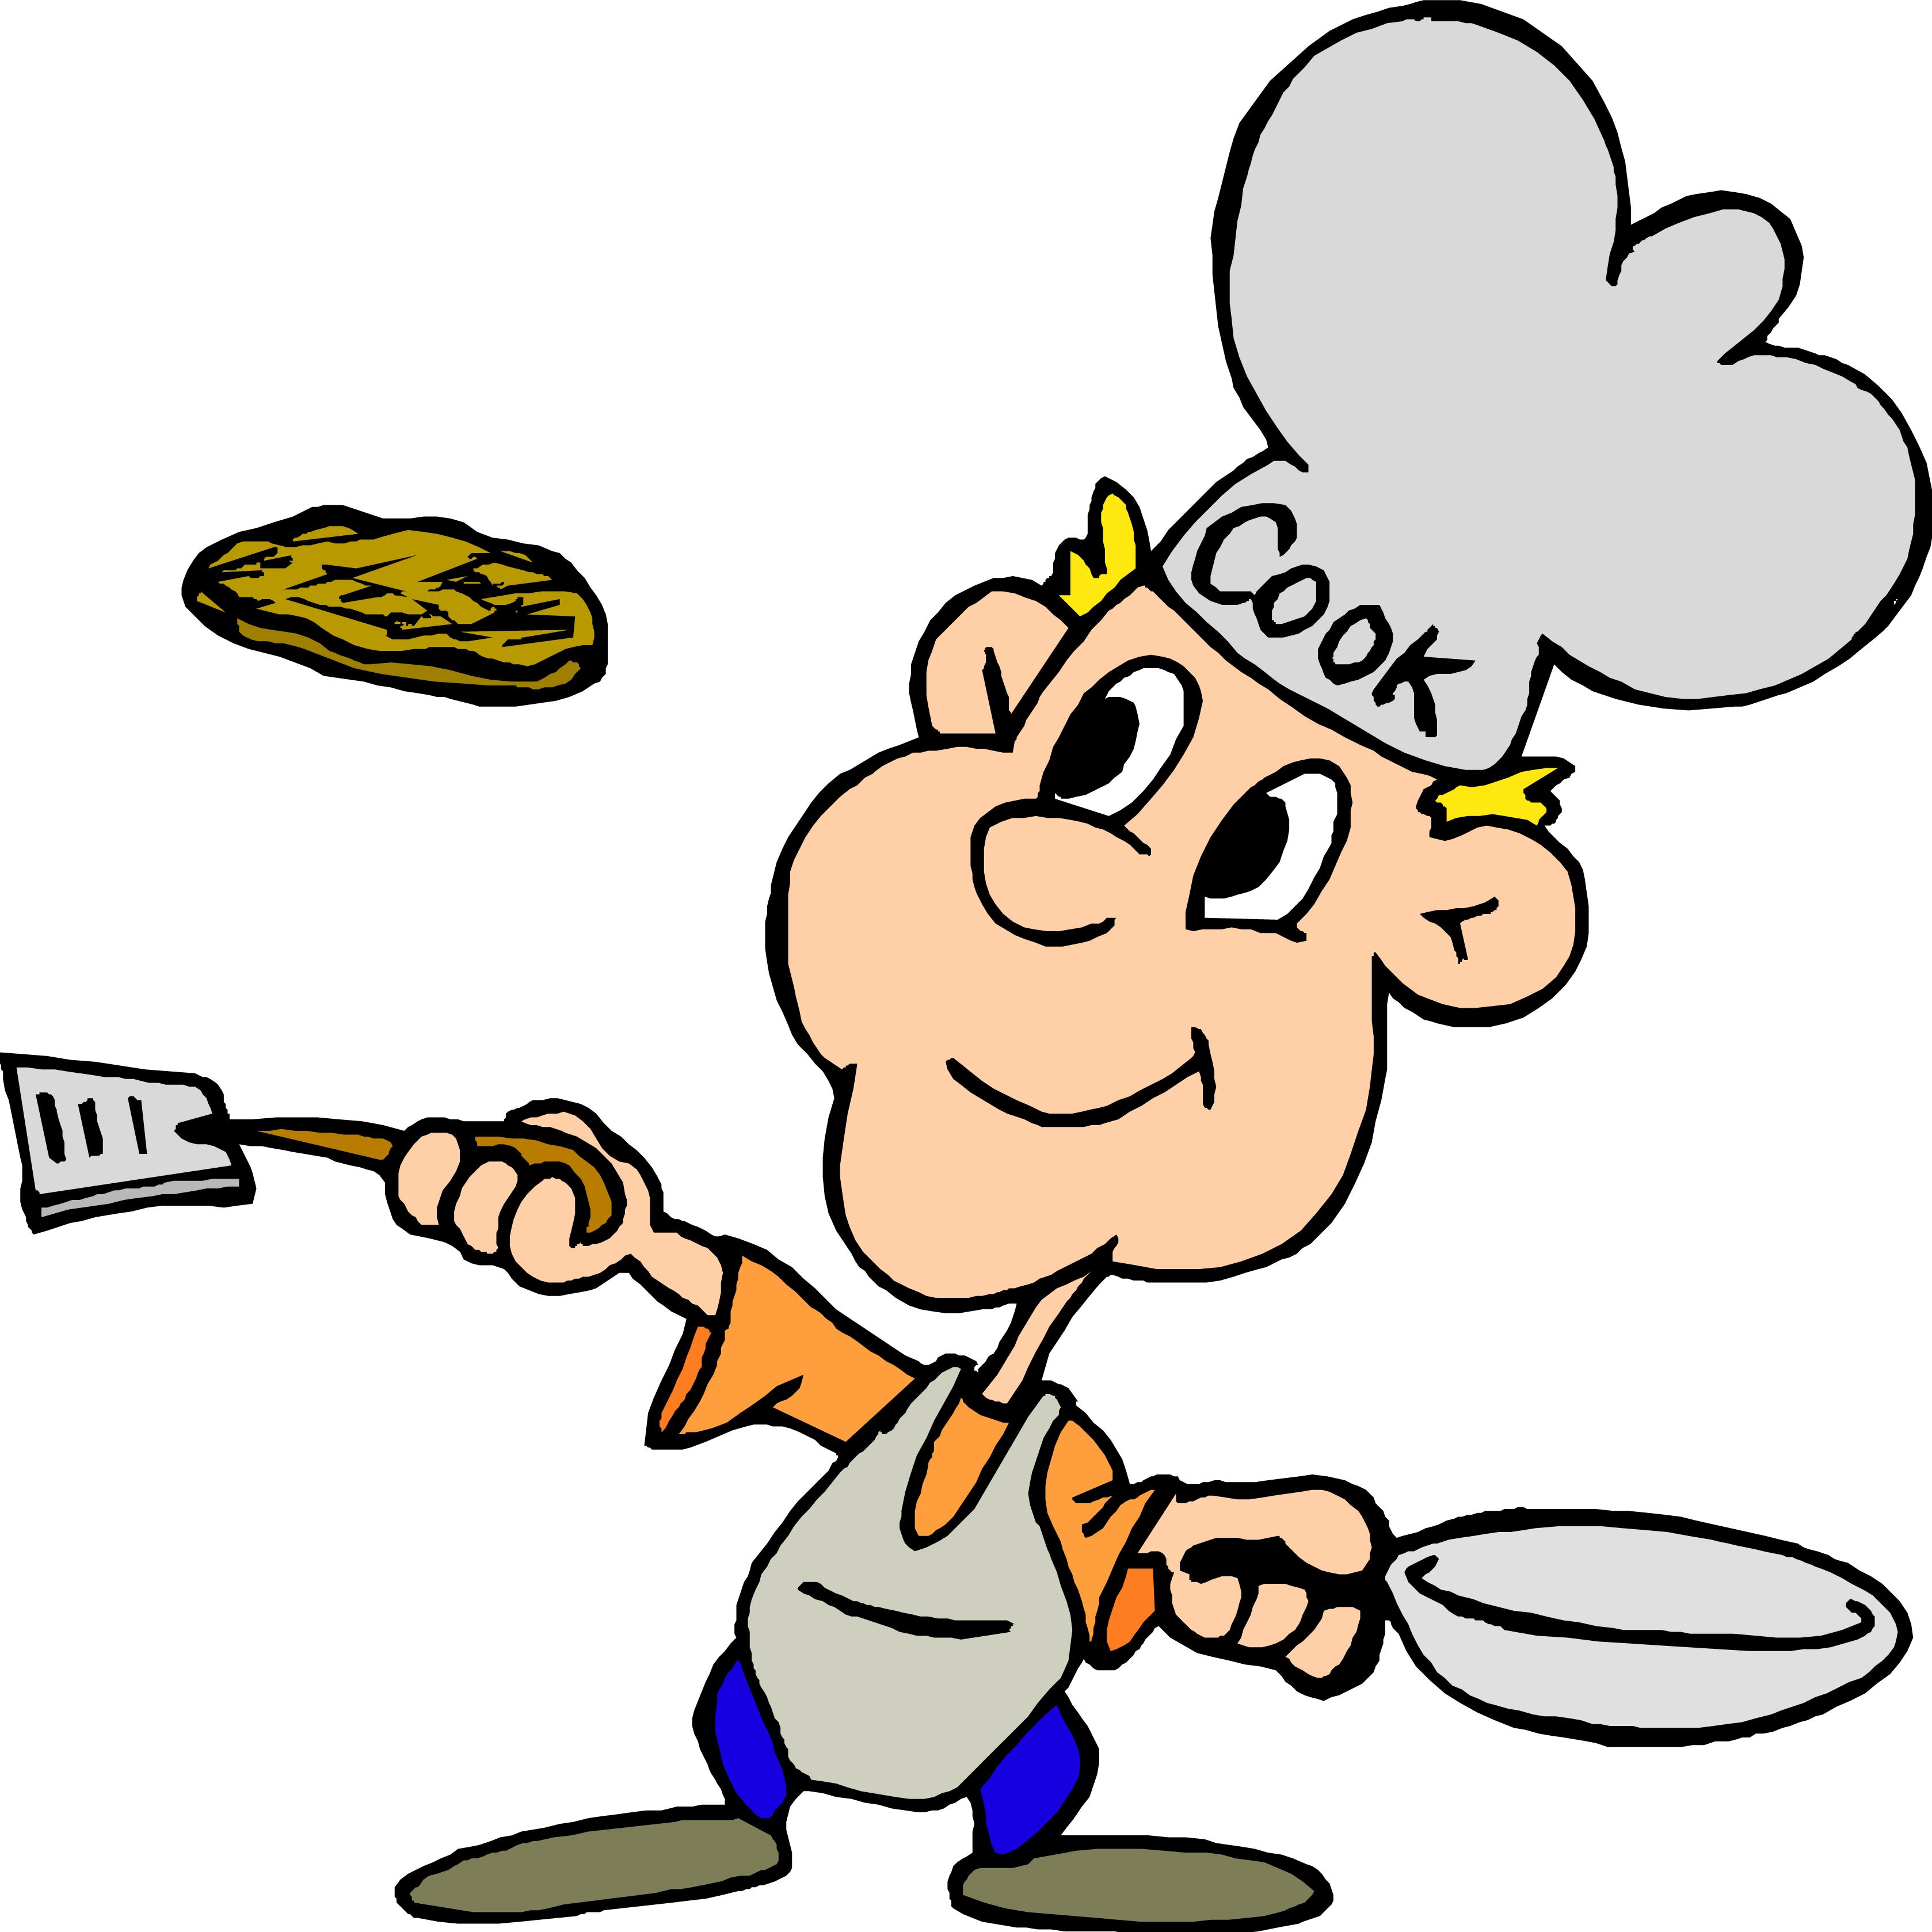 A cook flipping food in a pan.